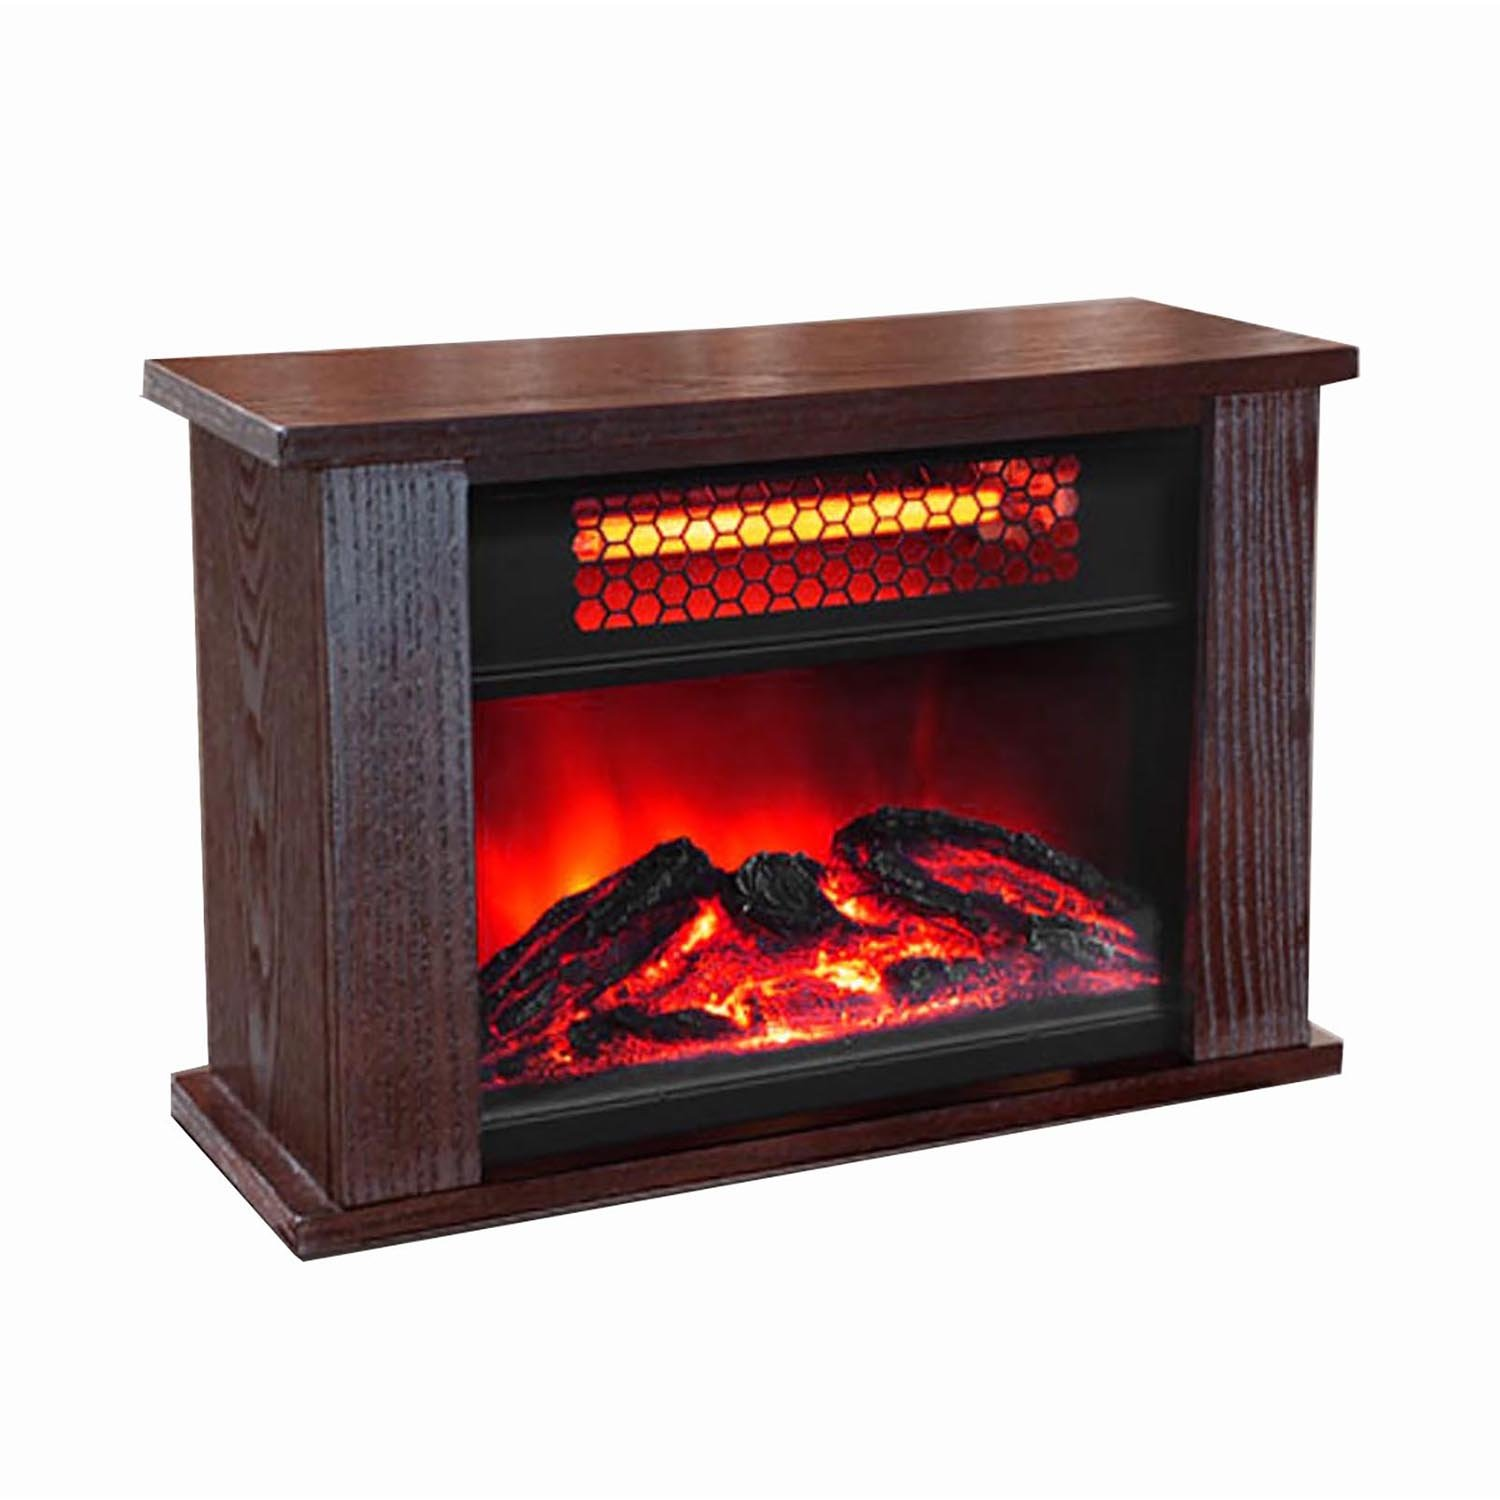 Amazon.com: LifePro Lifesmart 750 Watt Infrared Quartz Mini Wood Fireplace Space Heater: Home & Kitchen